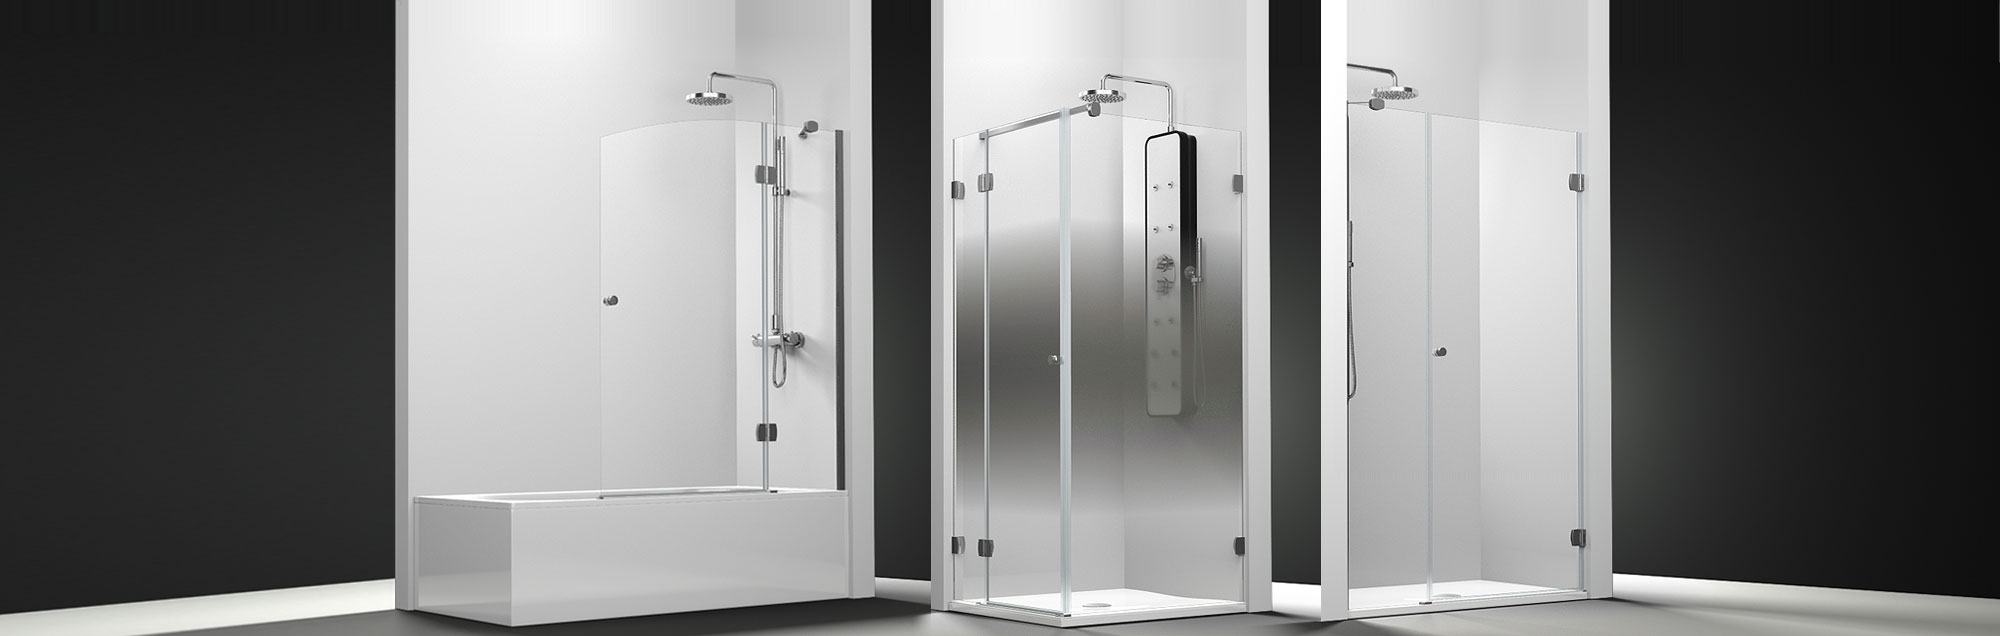 Newglass Collection swinging made to measure bathroom enclosures